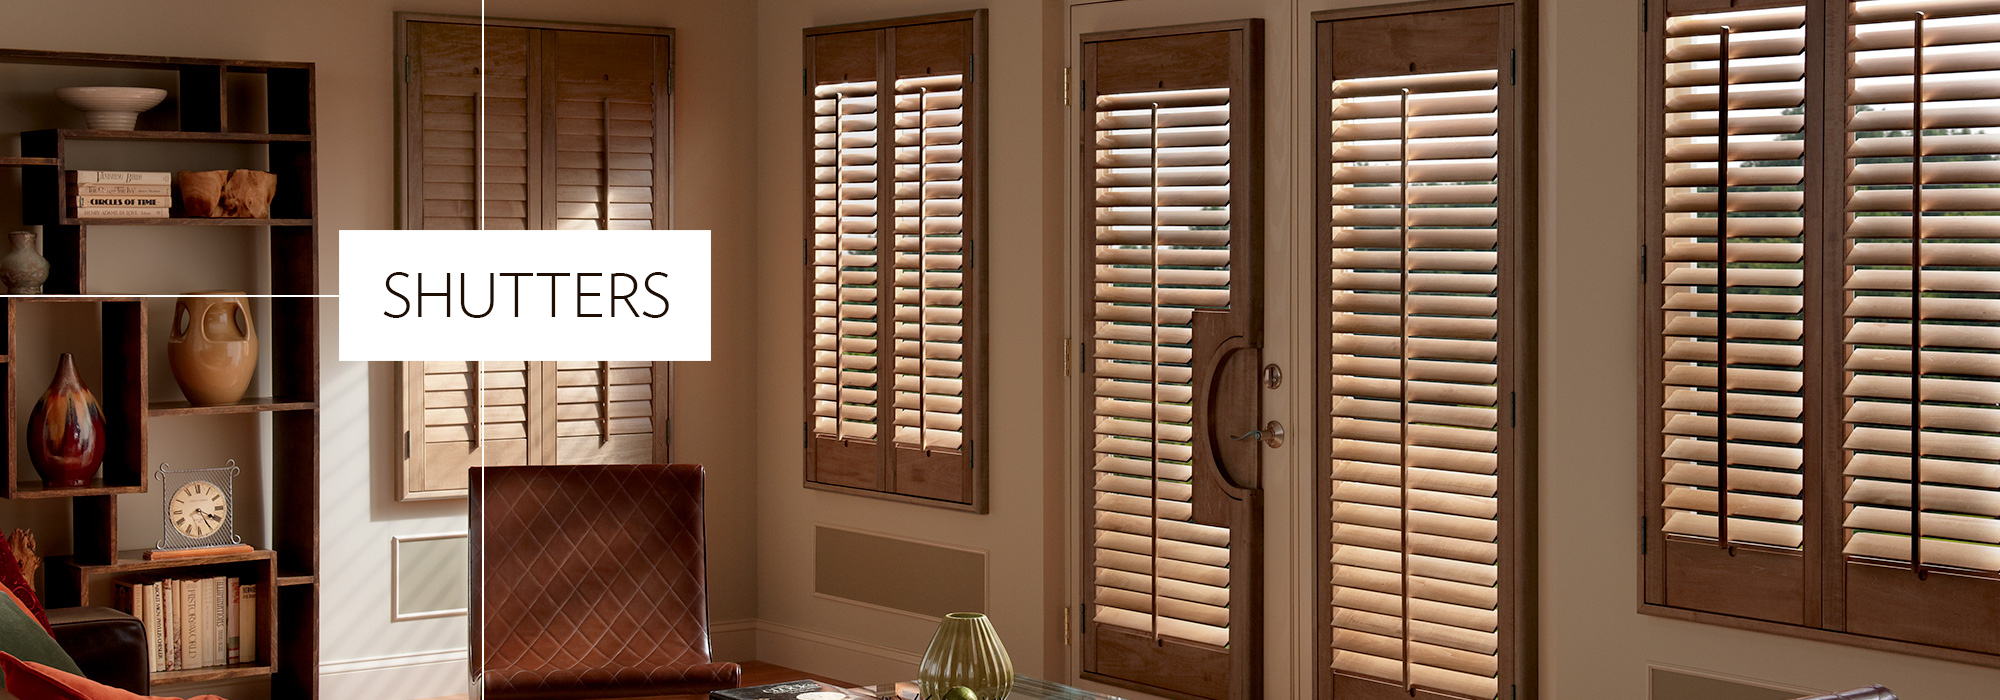 blinds alta shutters kansas in affordable shades honeycomb and mo city